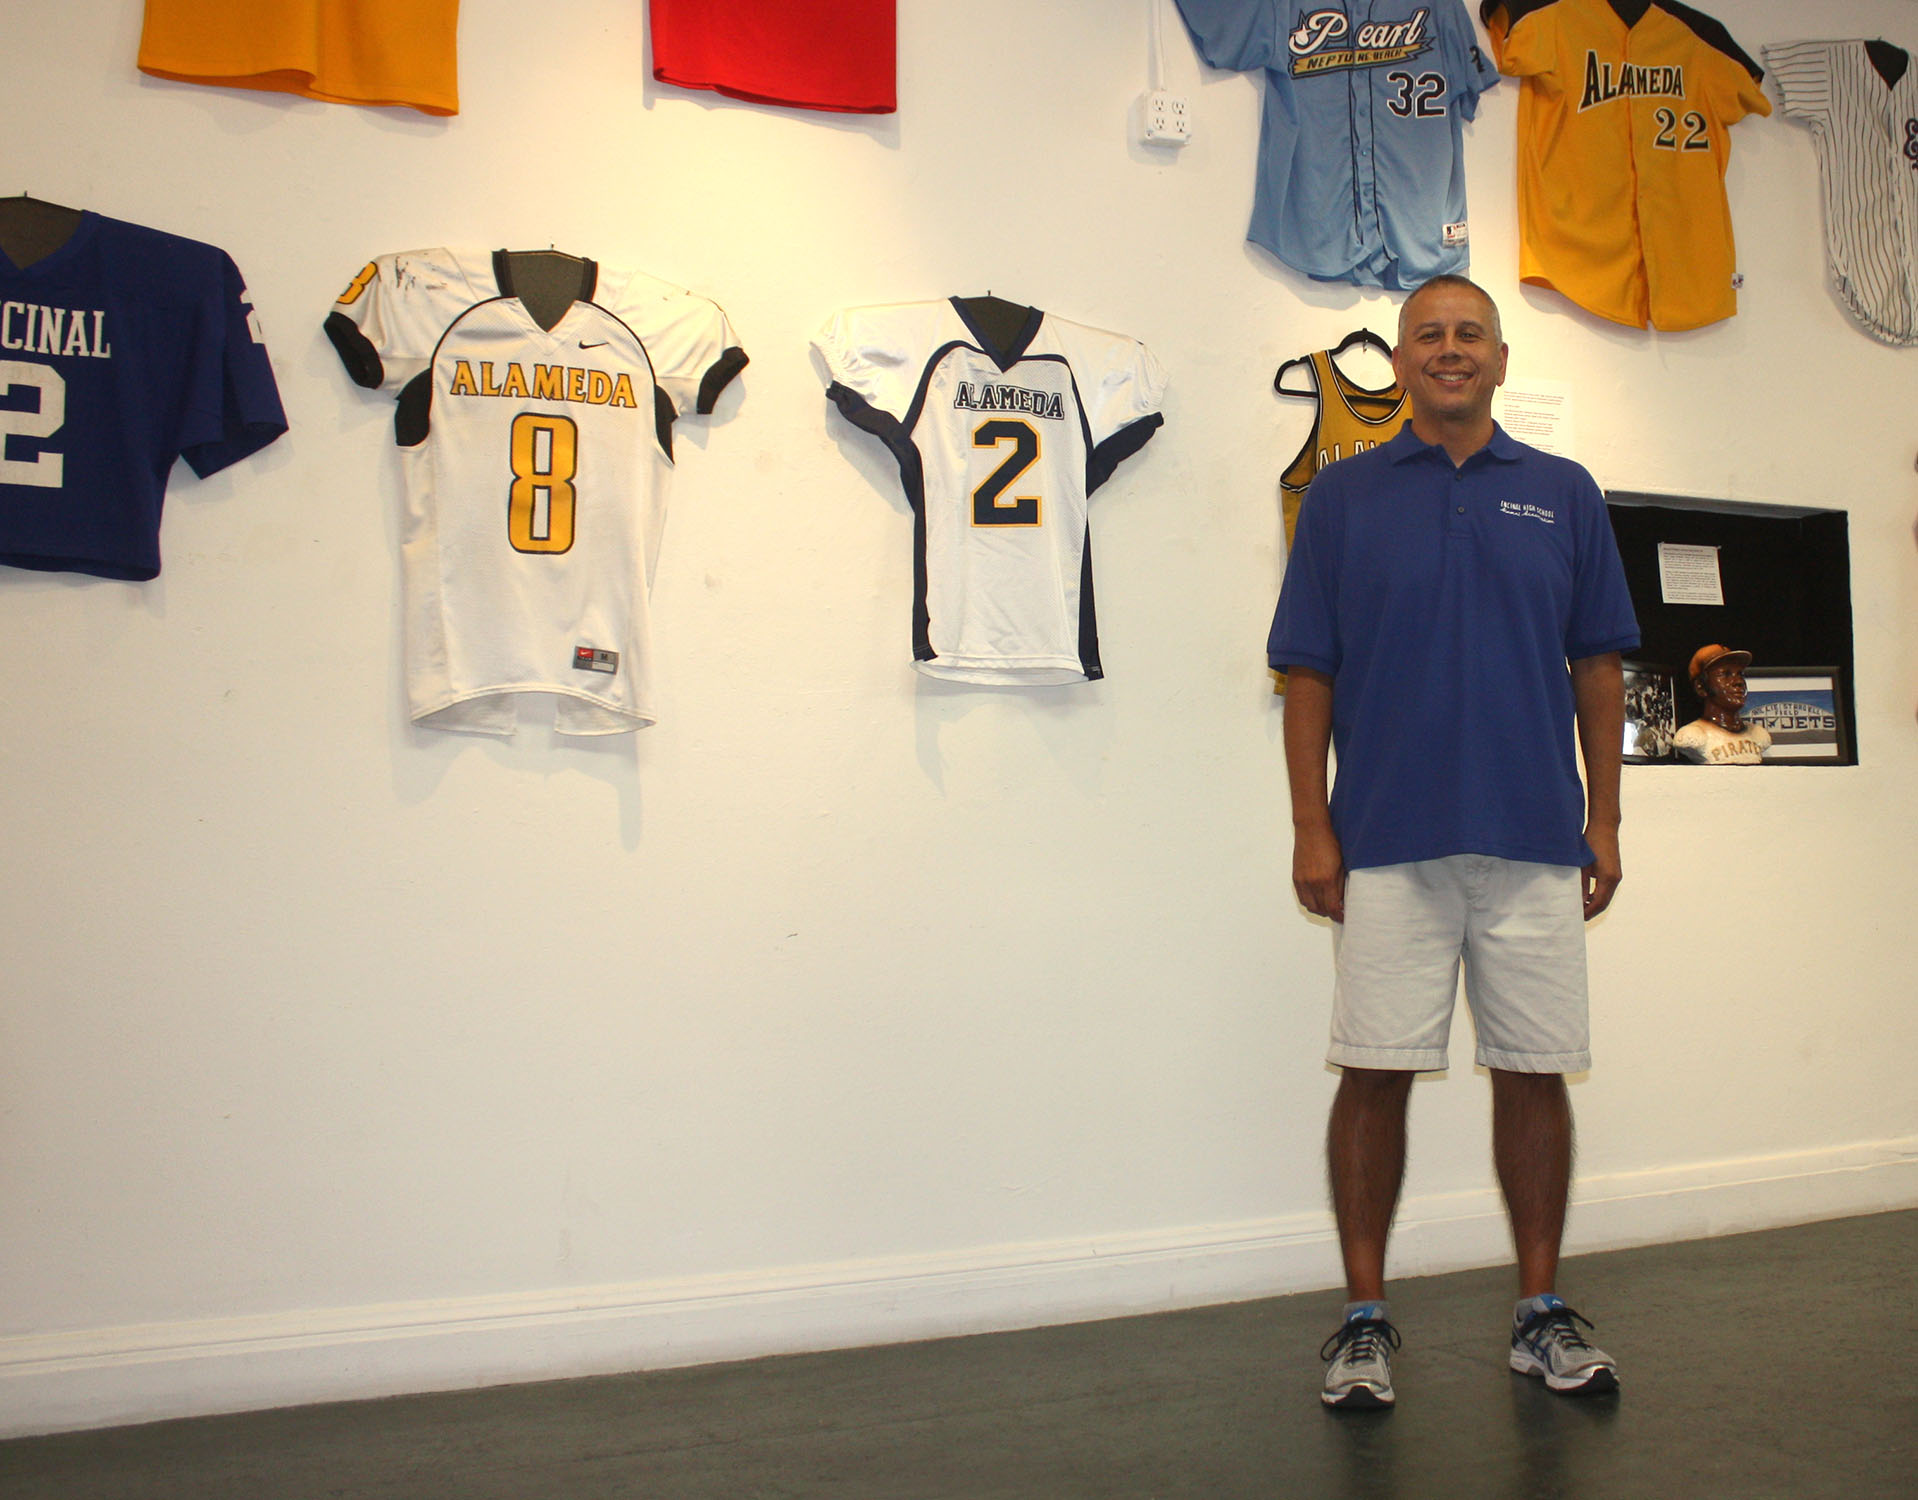 Dennis Evanosky  Dewey St. Germaine has helped create a comprehensive collection of Alameda sports history memorabilia. See the exhibit on display now at Alameda Museum.